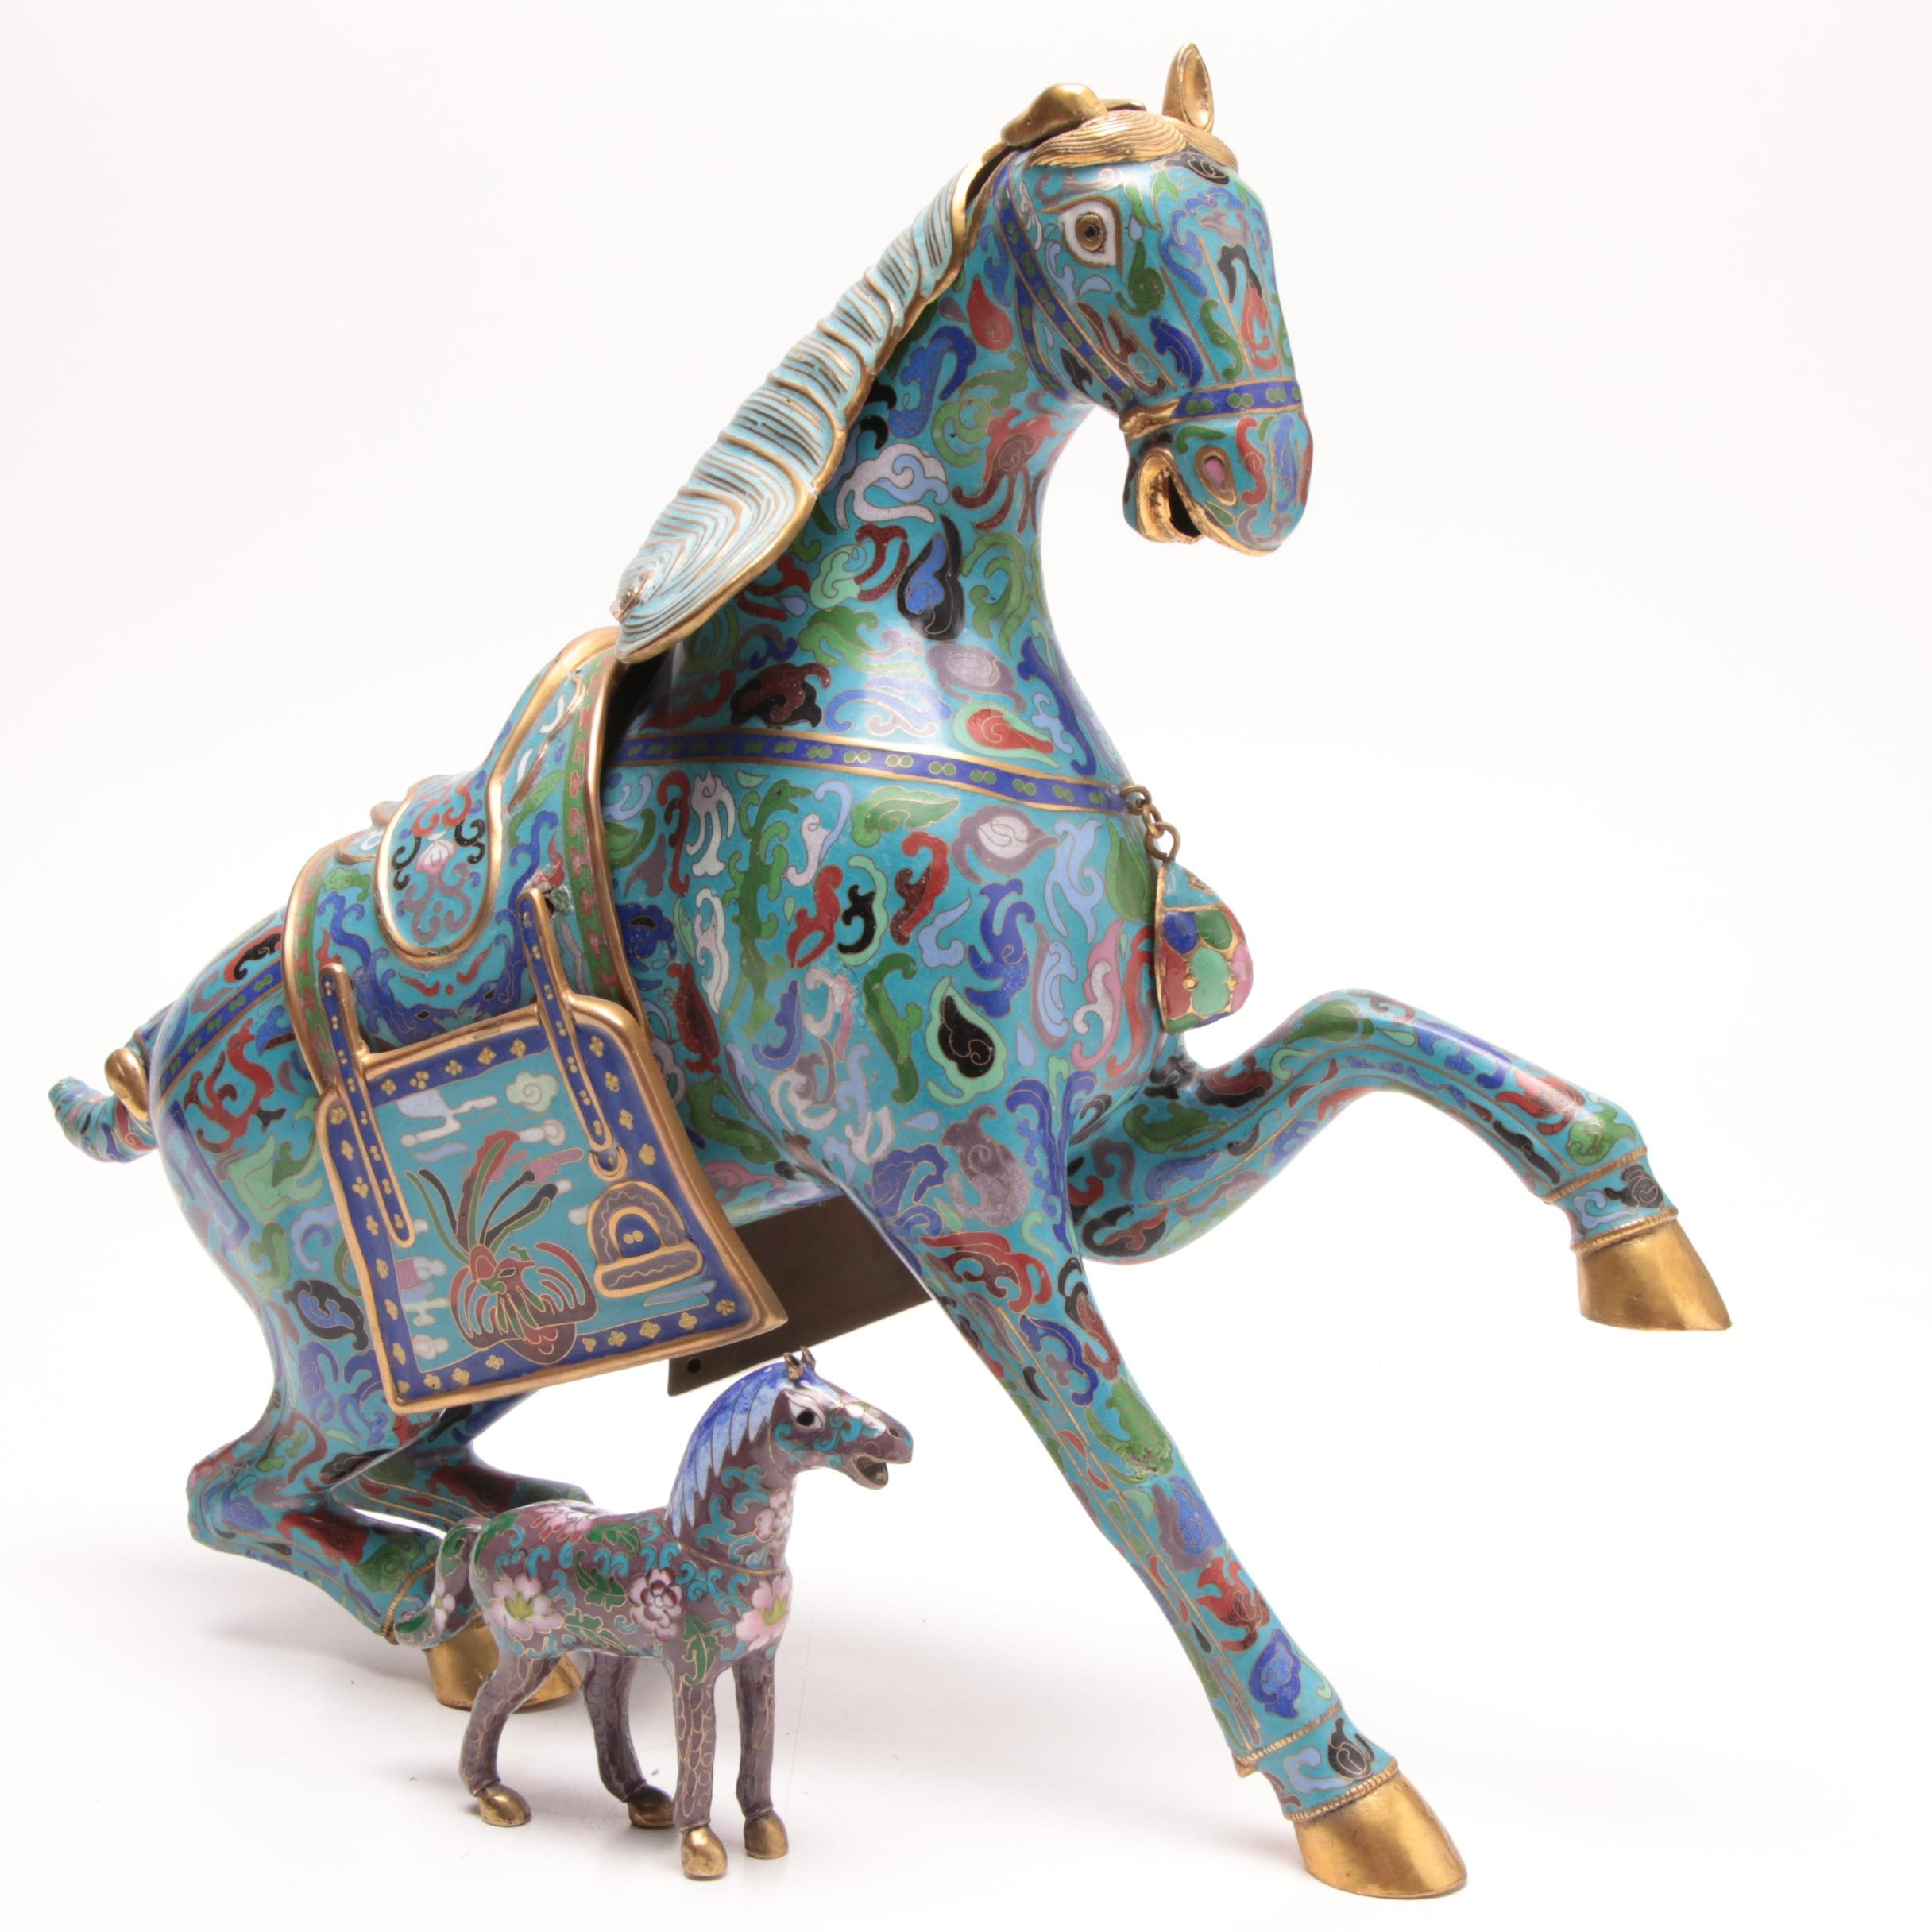 Chinese Cloisonné Horse Statue and Figurine